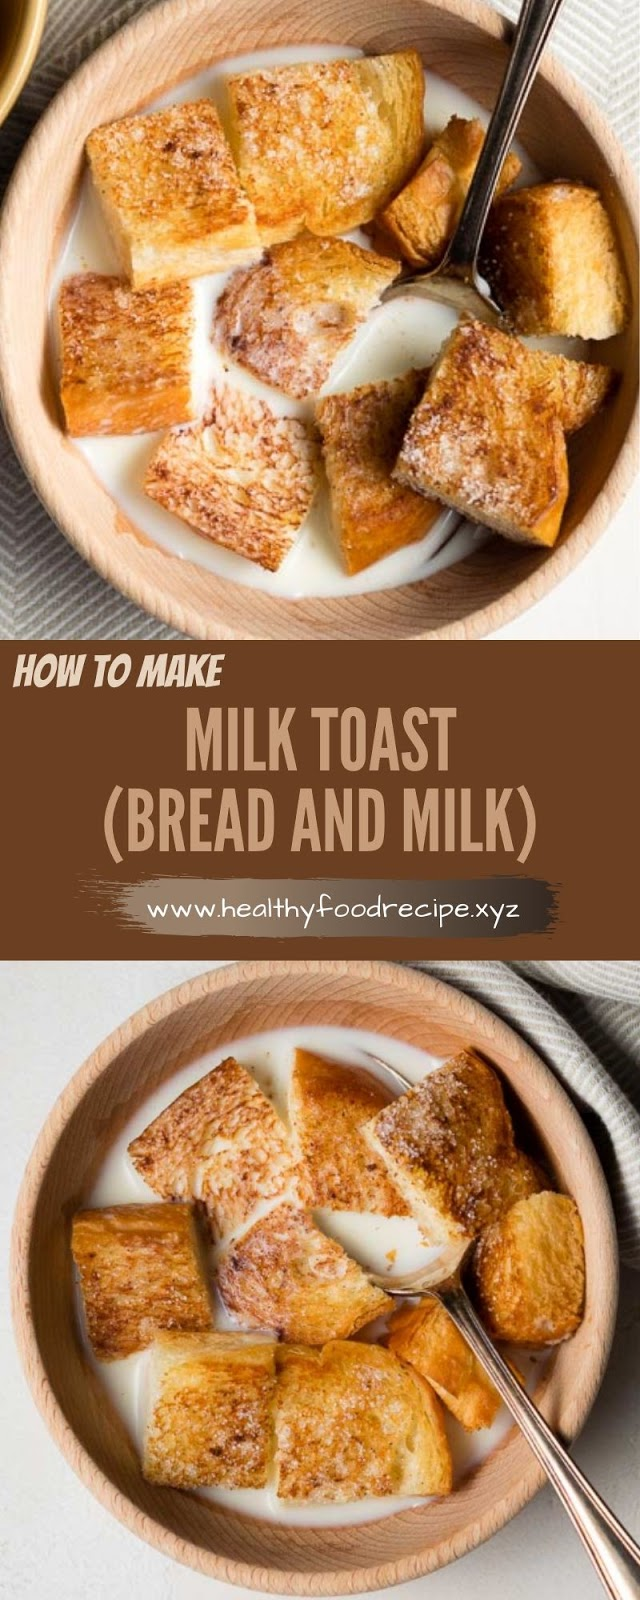 MILK TOAST (BREAD AND MILK)